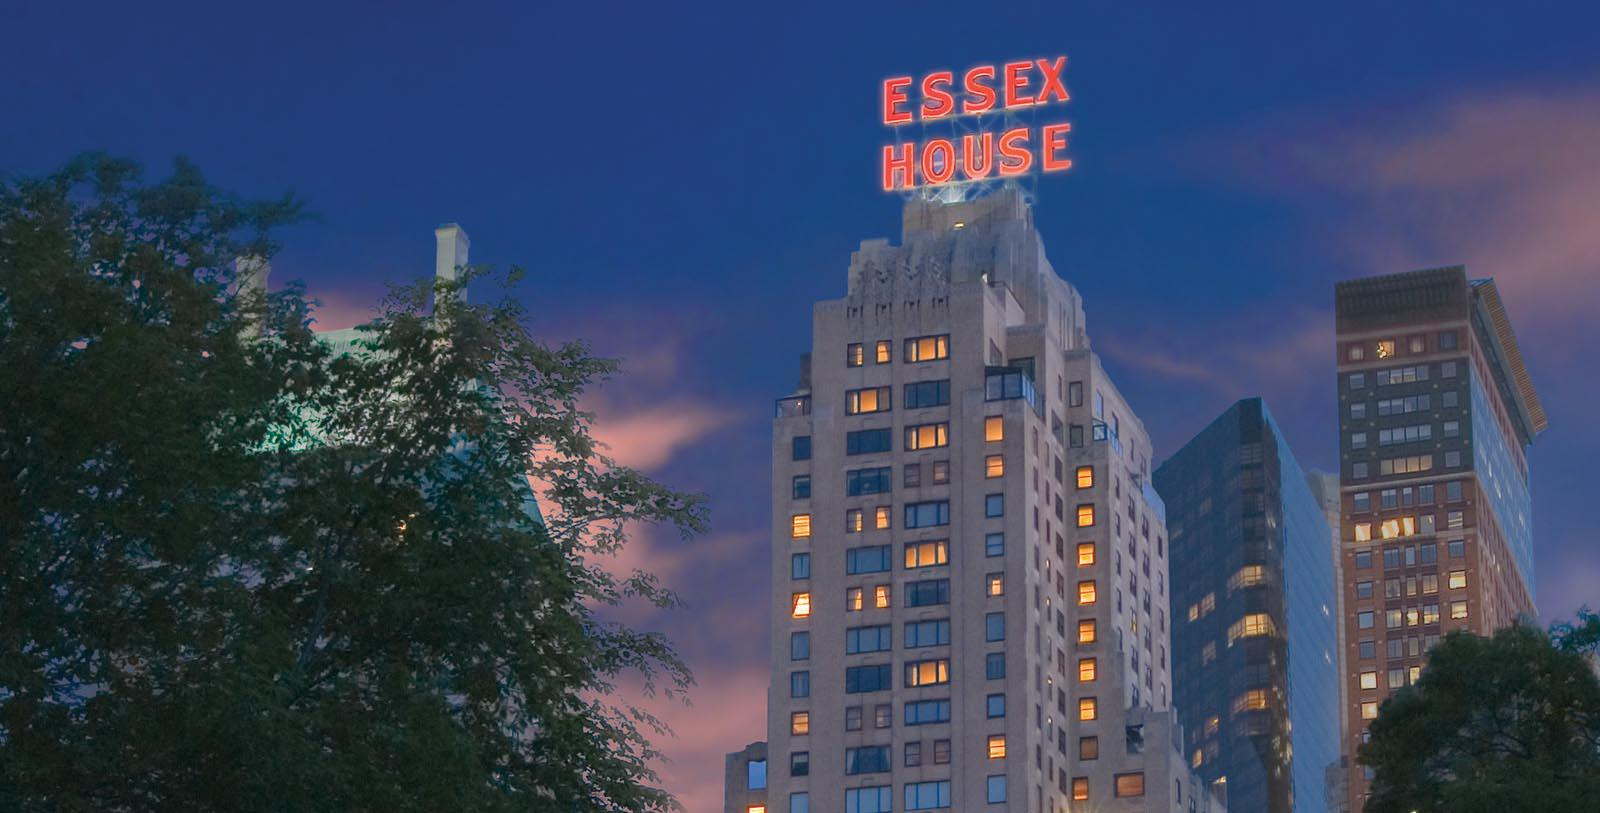 Image of Exterior at Night, JW Marriott Essex House New York, New York, 1931, Member of Historic Hotels of America, Overview